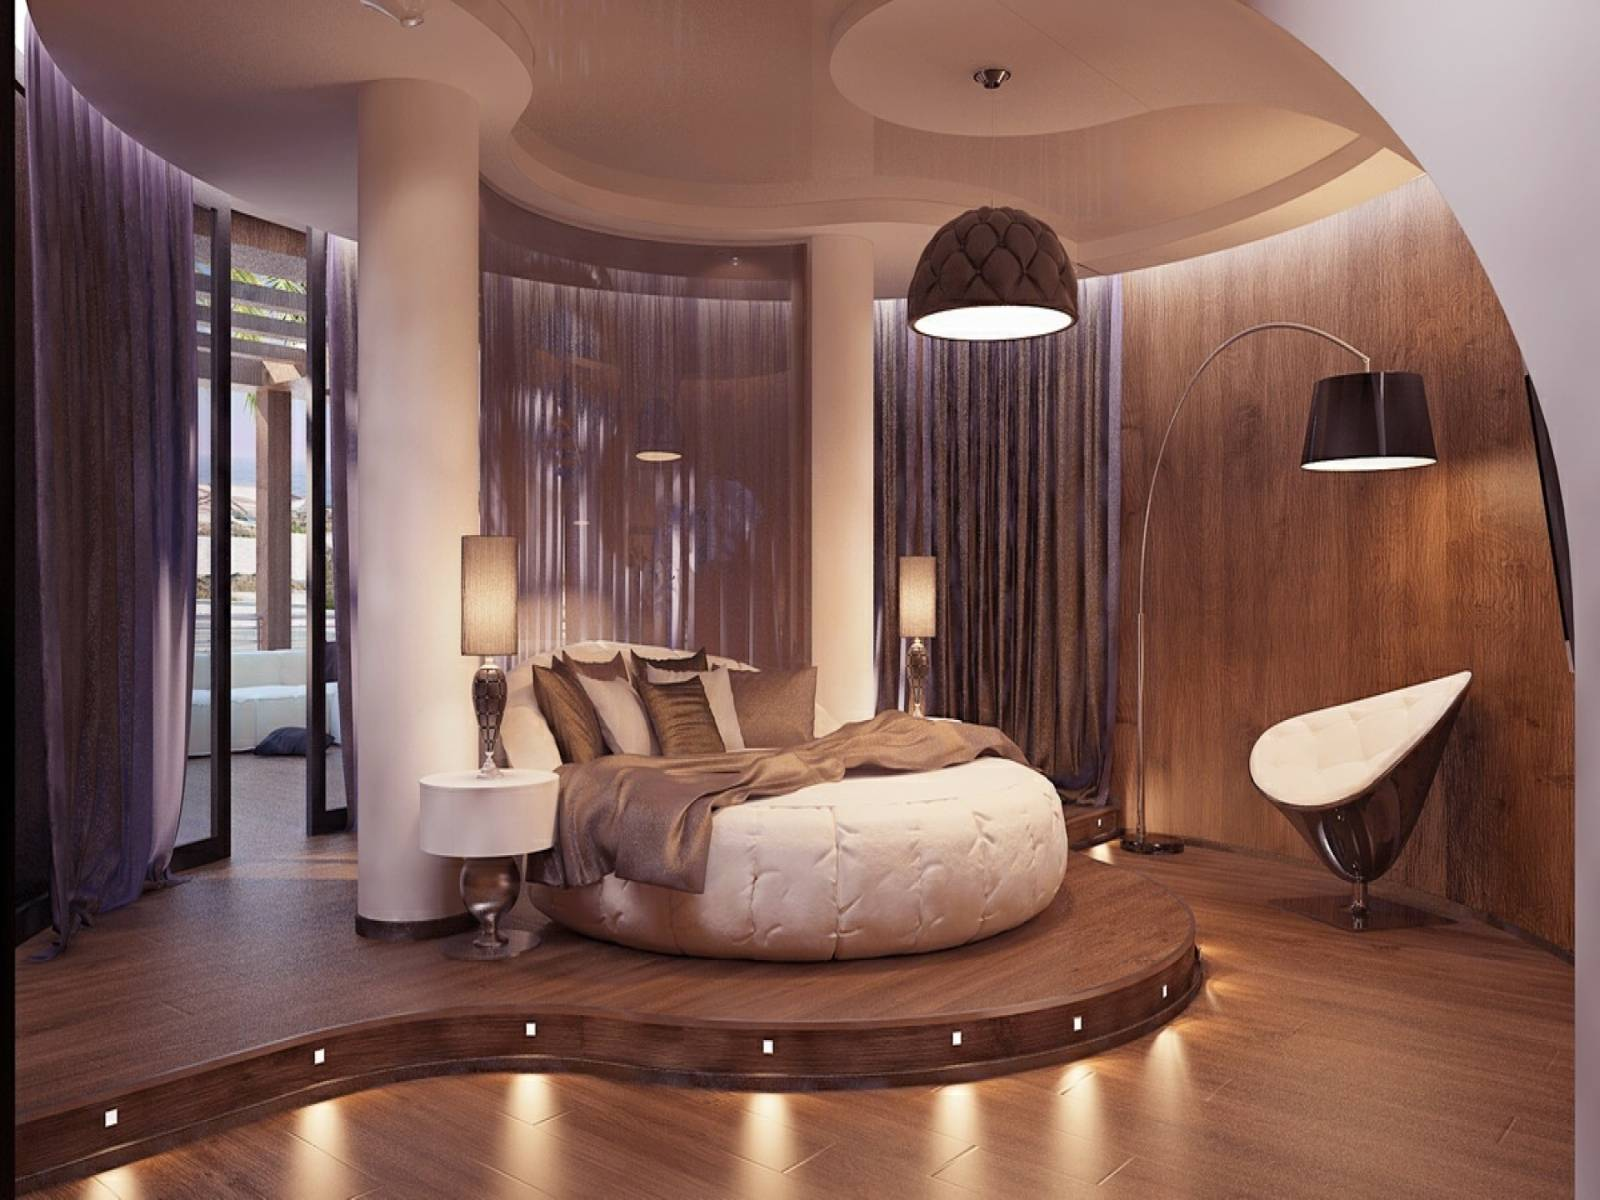 33 Remarkable and Best Bedroom Design or Decorating Ideas ... on Good Bedroom Ideas For Small Rooms  id=74311